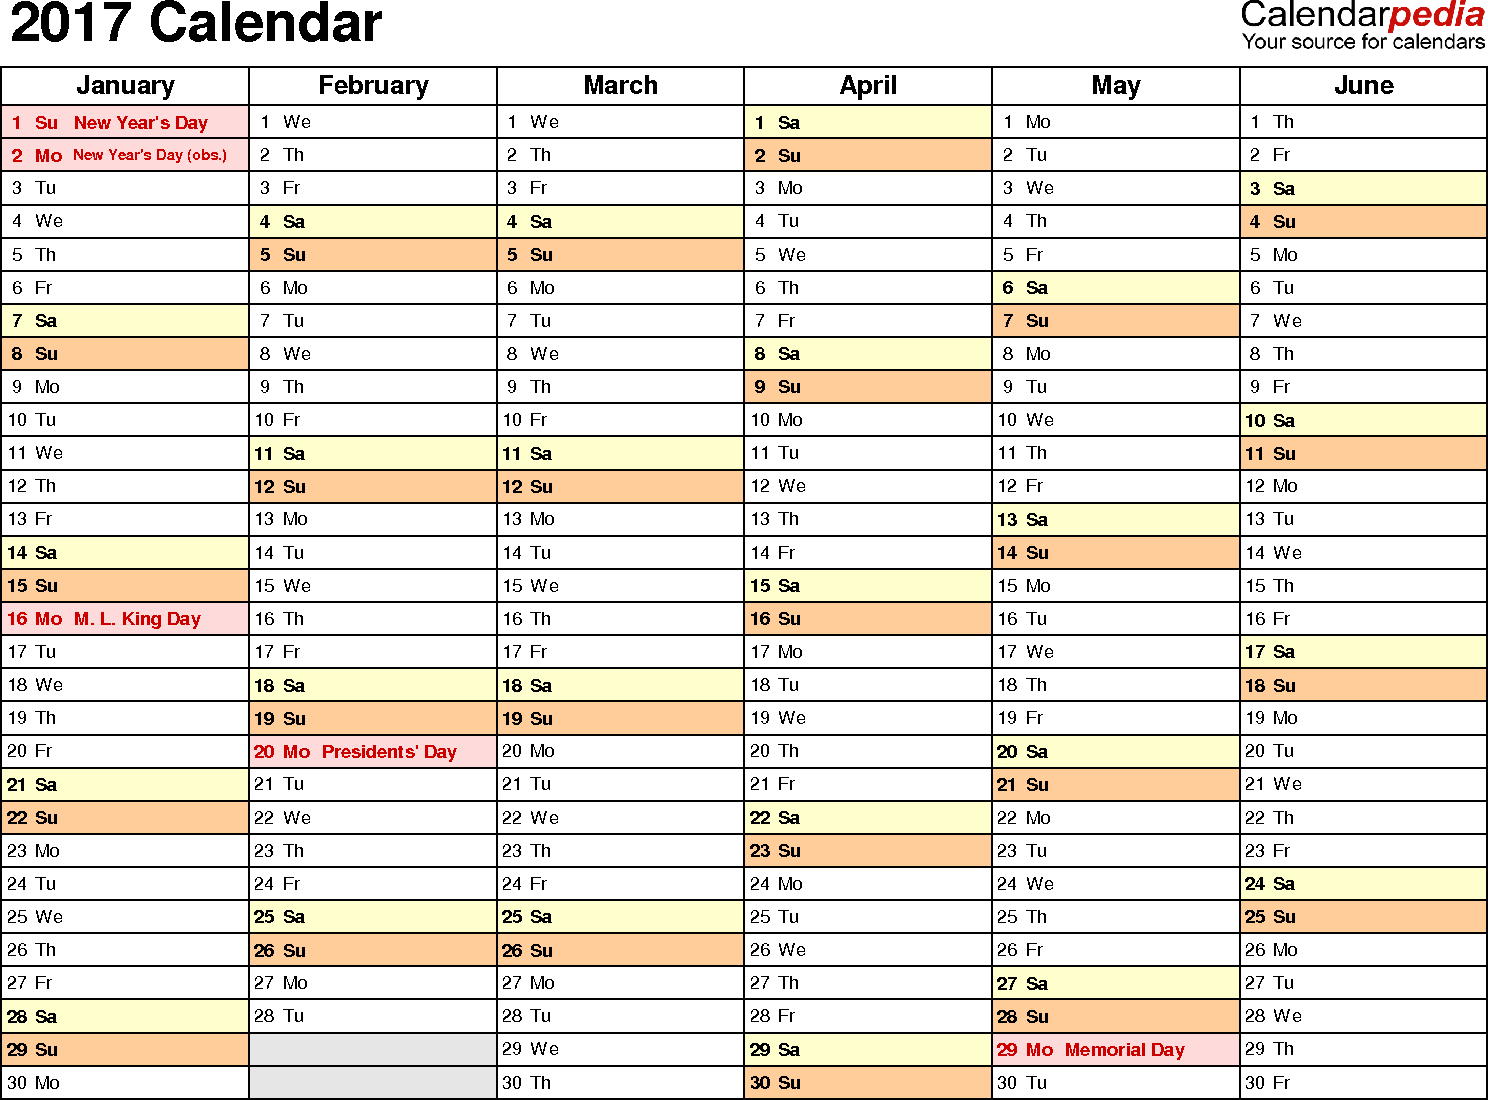 Ediblewildsus  Pleasant  Calendar  Download  Free Printable Excel Templates Xls With Magnificent Template   Calendar For Excel Months Horizontally  Pages Landscape Orientation With Adorable Excel Basic Training Also Excel Date Code In Addition Parsing Text In Excel And Apache Poi Read Excel As Well As Excel Mobile App Additionally Wrap Text On Excel From Calendarpediacom With Ediblewildsus  Magnificent  Calendar  Download  Free Printable Excel Templates Xls With Adorable Template   Calendar For Excel Months Horizontally  Pages Landscape Orientation And Pleasant Excel Basic Training Also Excel Date Code In Addition Parsing Text In Excel From Calendarpediacom